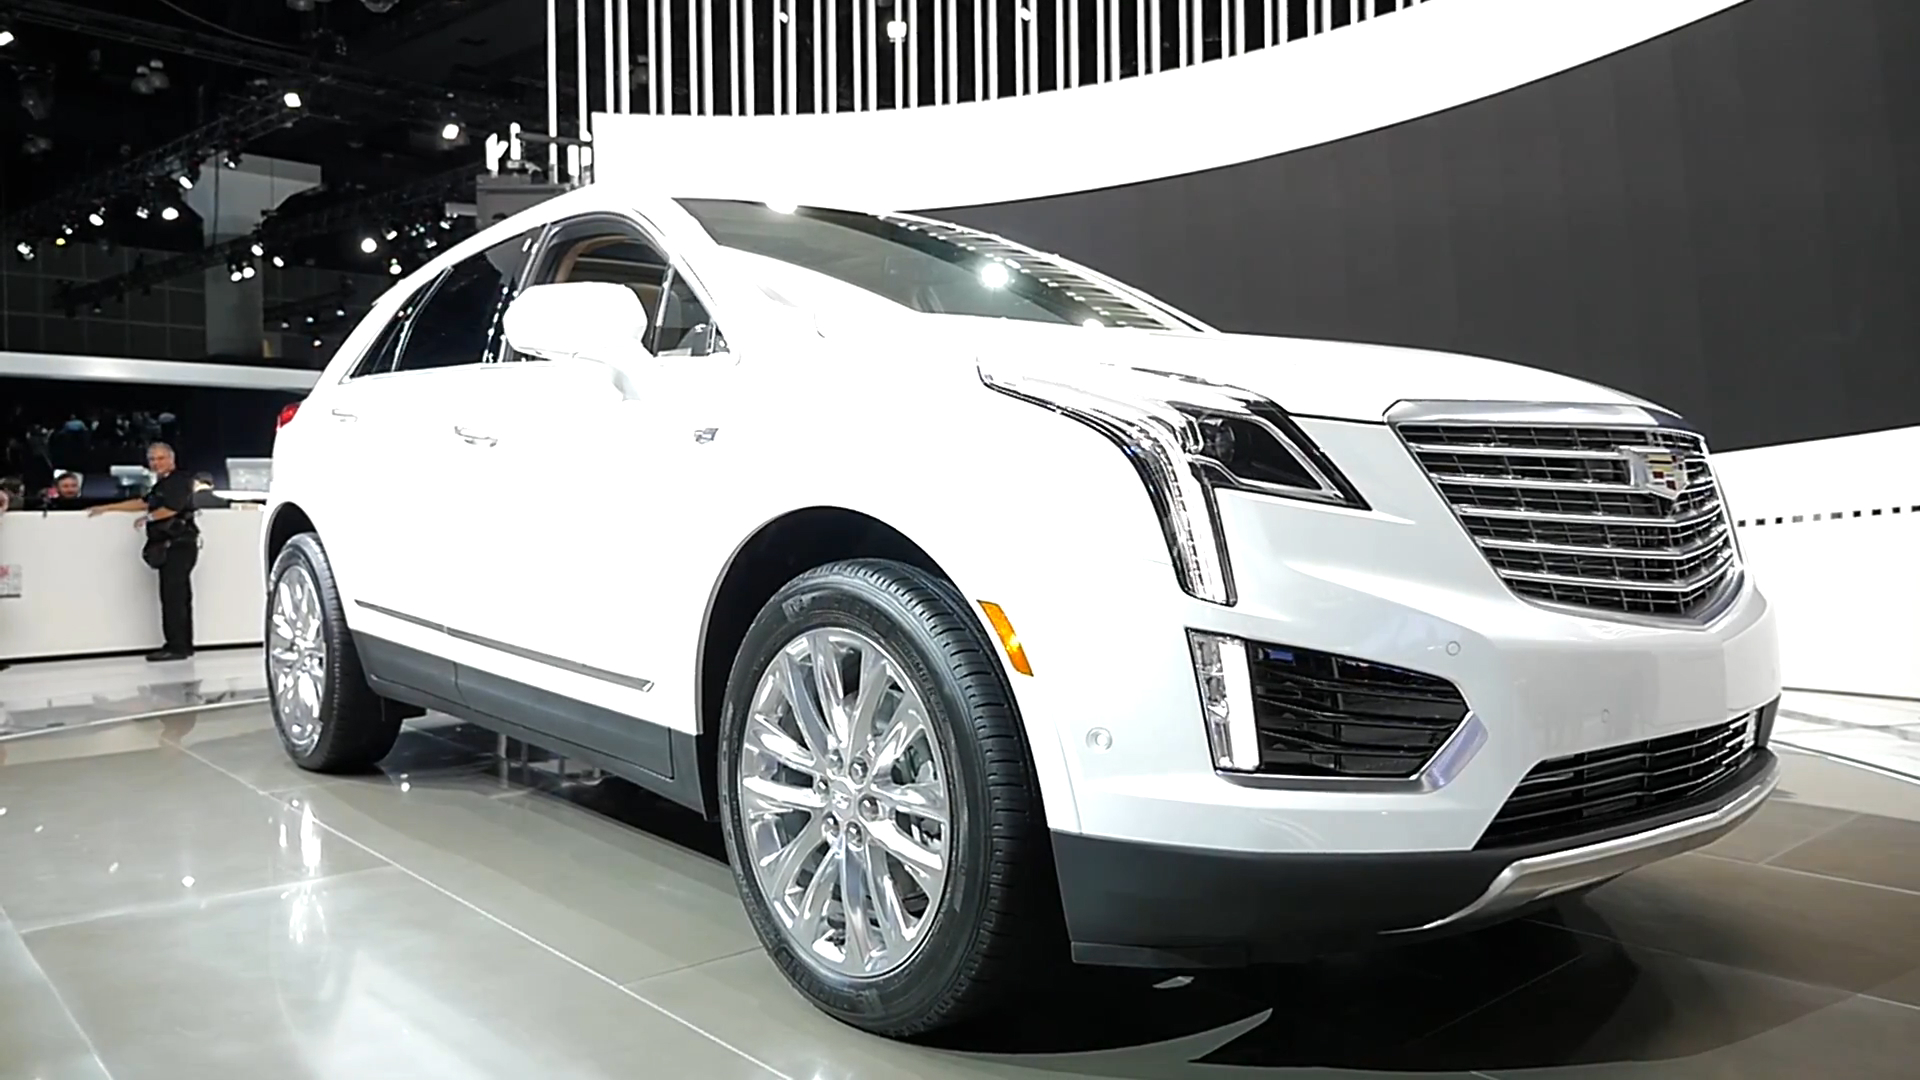 cadillac xt4 compact luxury crossover suv caught again with less camouflage and production. Black Bedroom Furniture Sets. Home Design Ideas